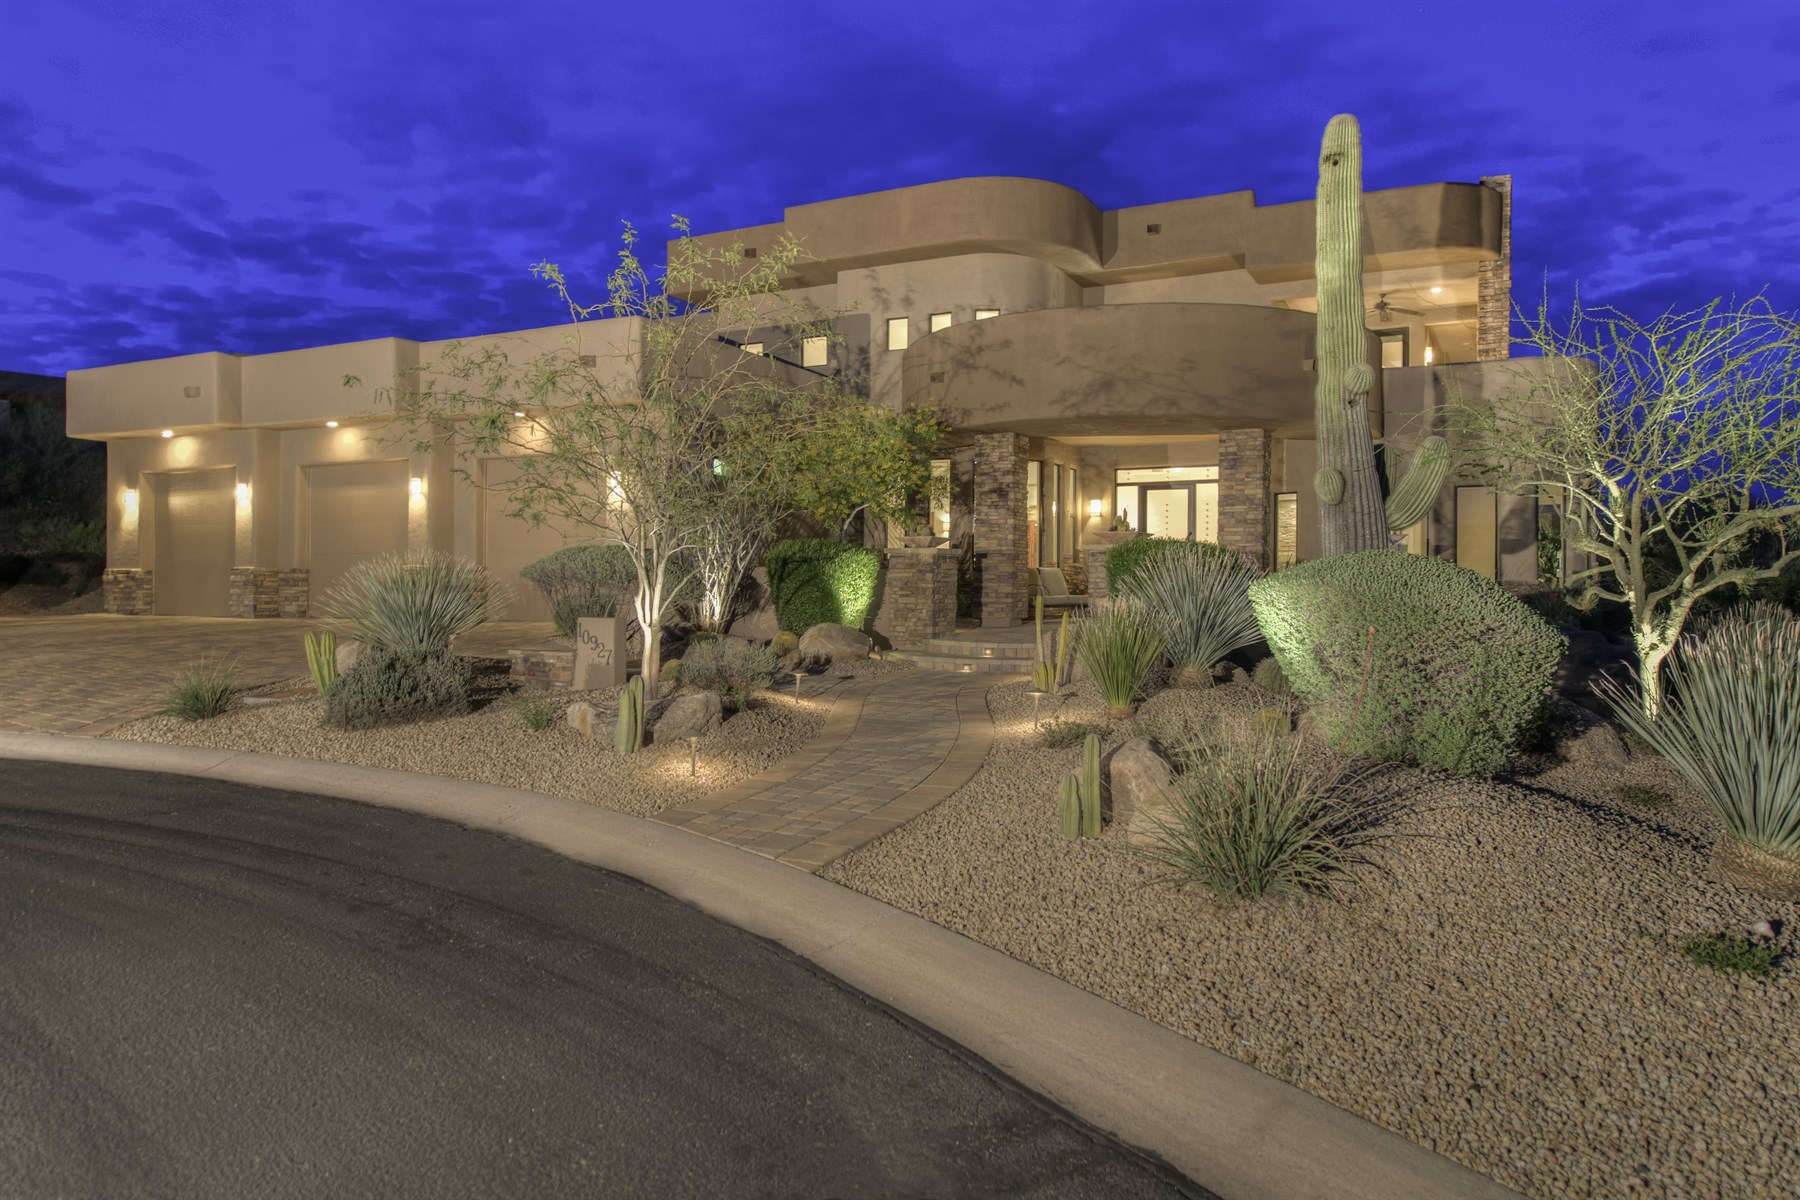 Single Family Home for Sale at Exquisite Home In The Guard Gated Golf Community Of Candlewood Estates At Troon 10927 E Skinner Drive Scottsdale, Arizona, 85262 United States